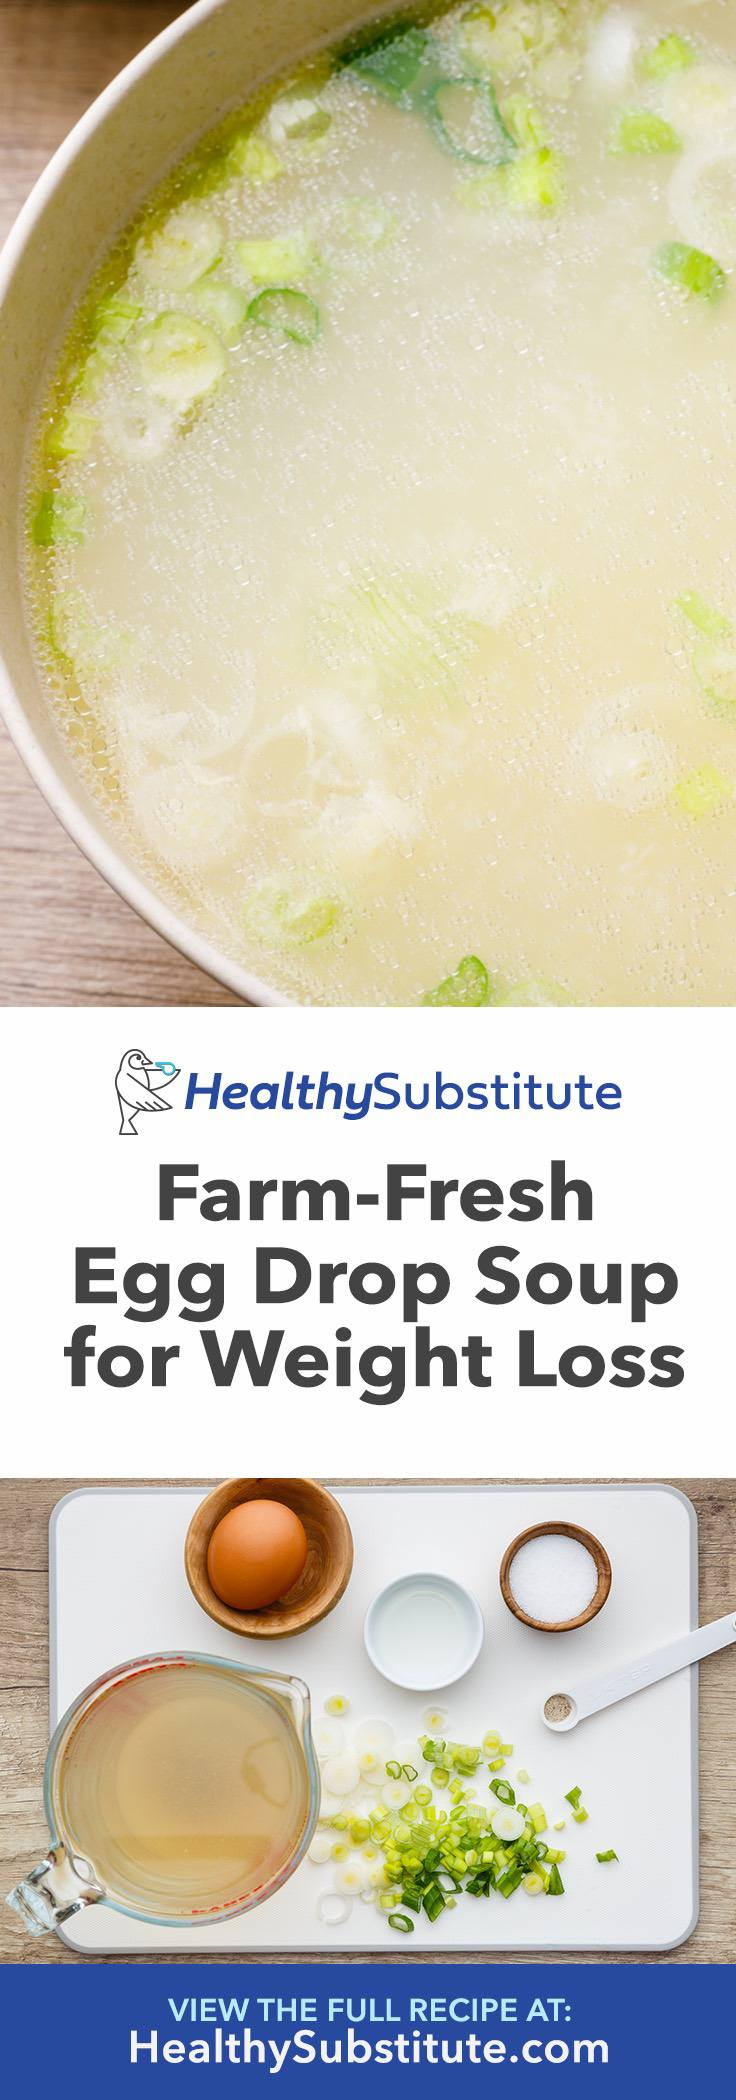 Farm-Fresh Egg Drop Soup for Weight Loss